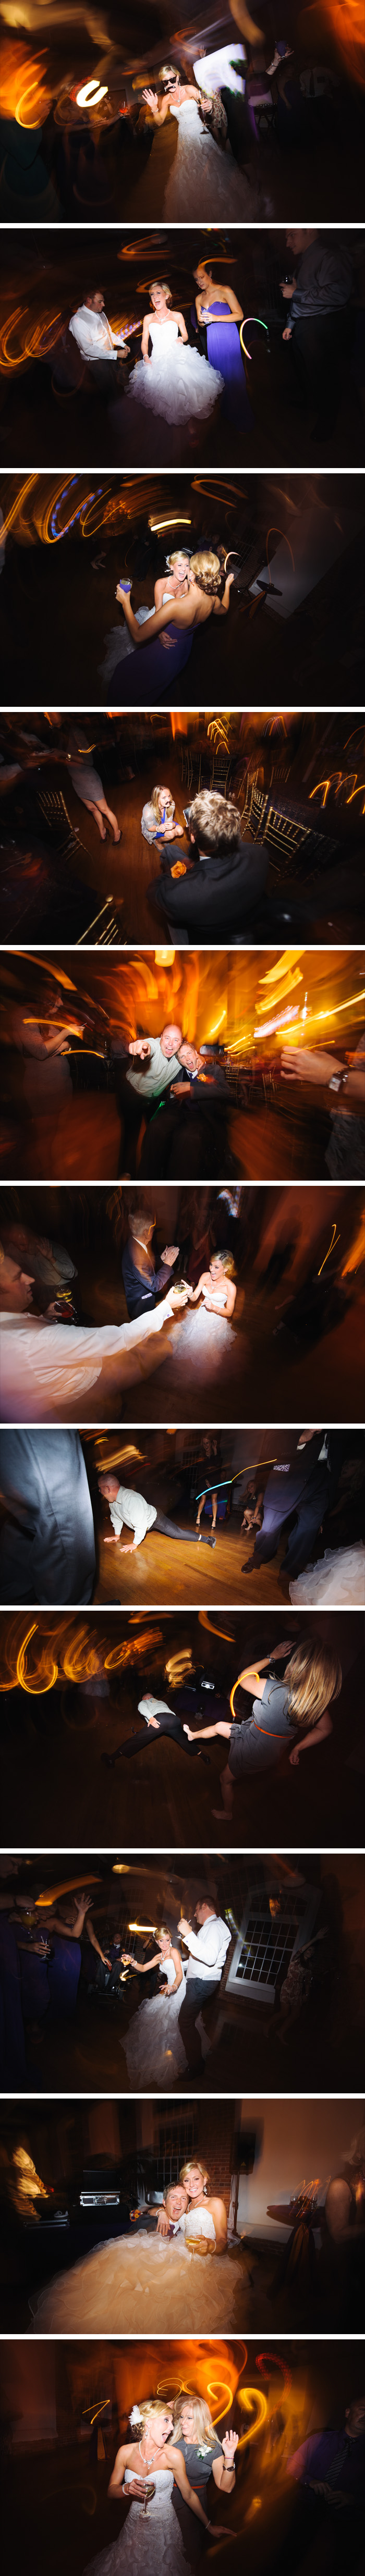 dancing 1 Stacey + Patrick | Greensboro, NC Wedding